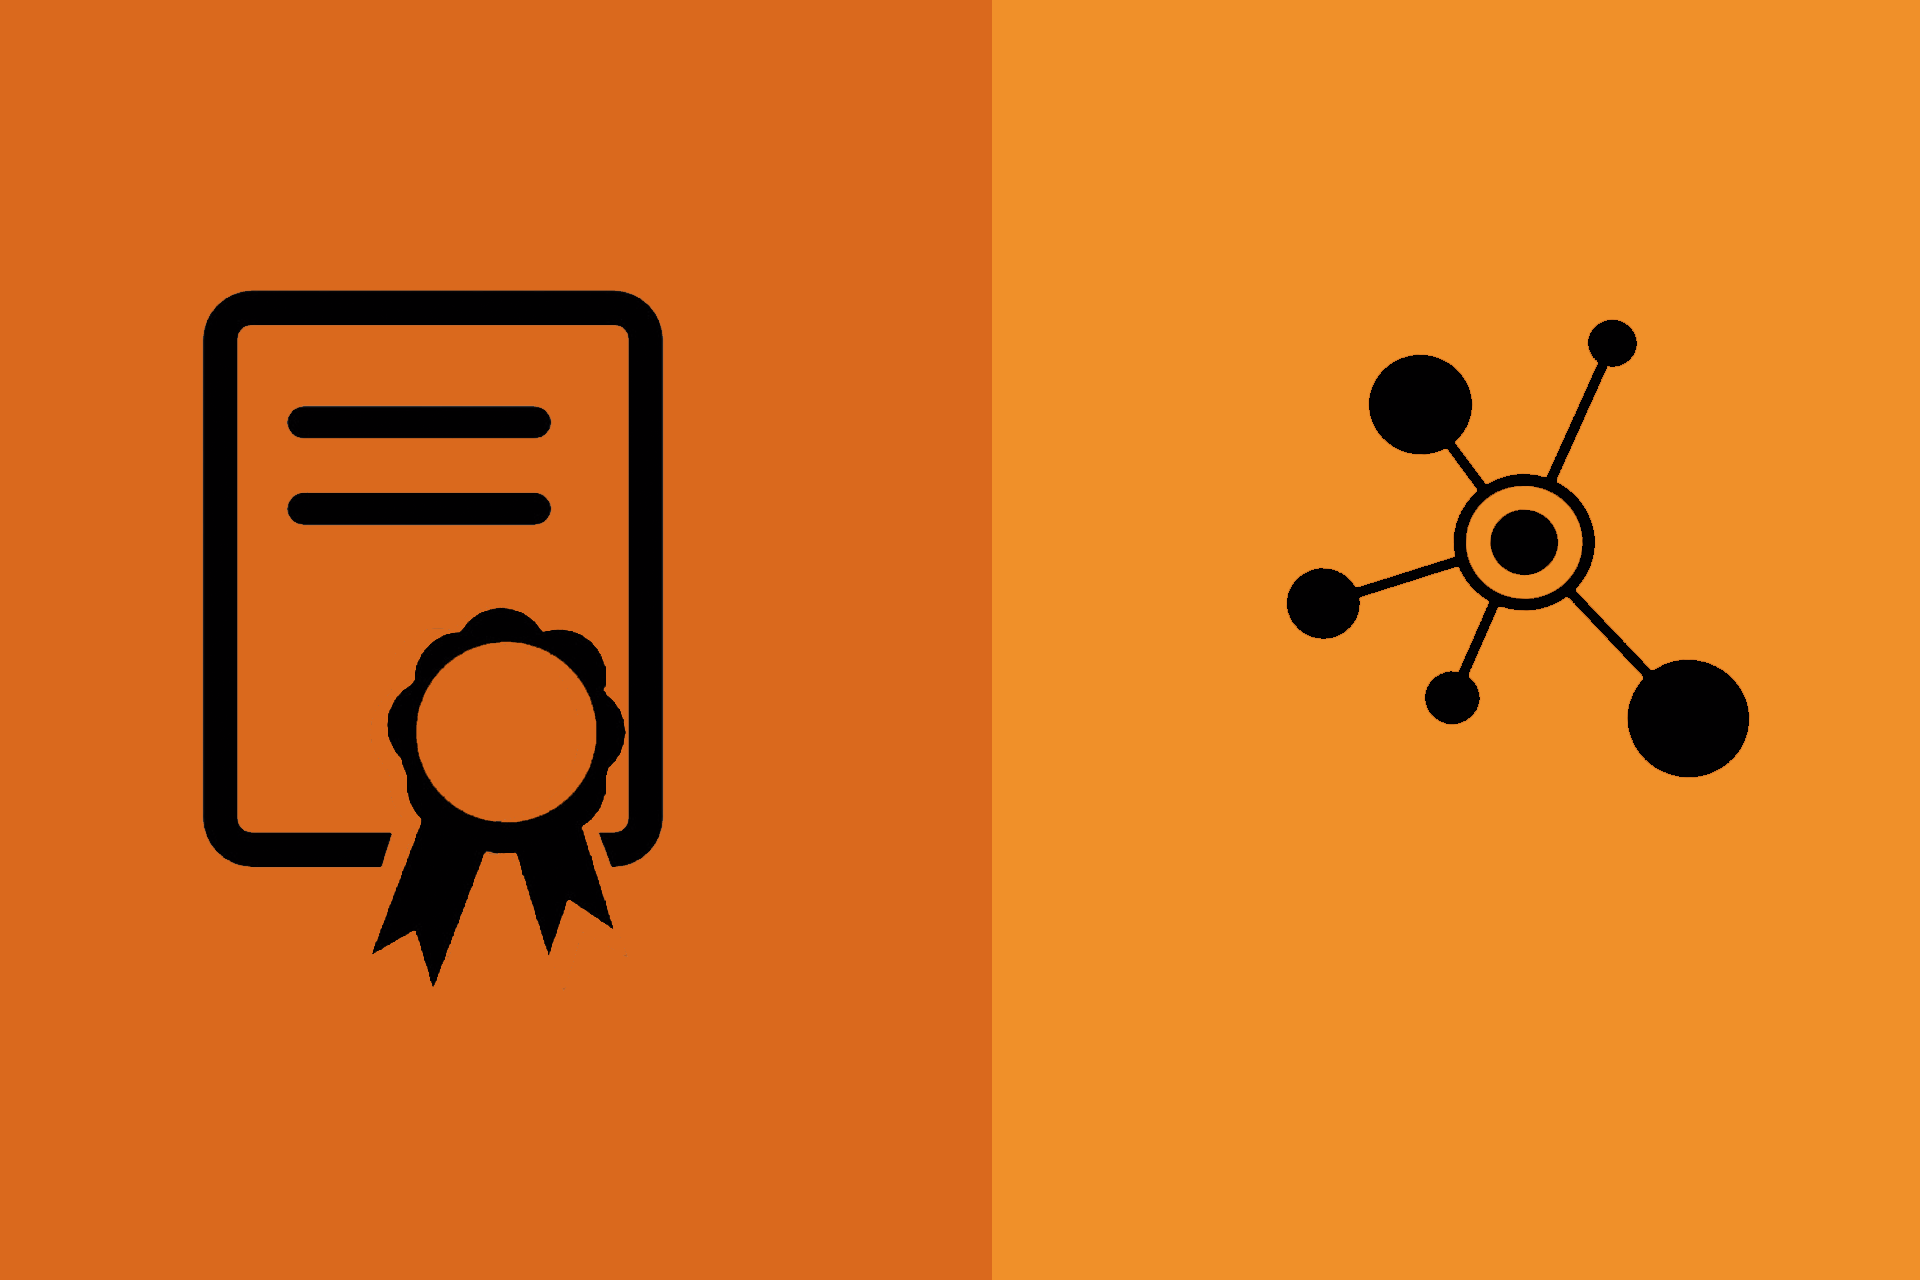 t2informatik Blog: Certificates or networking - what is more important in projects?